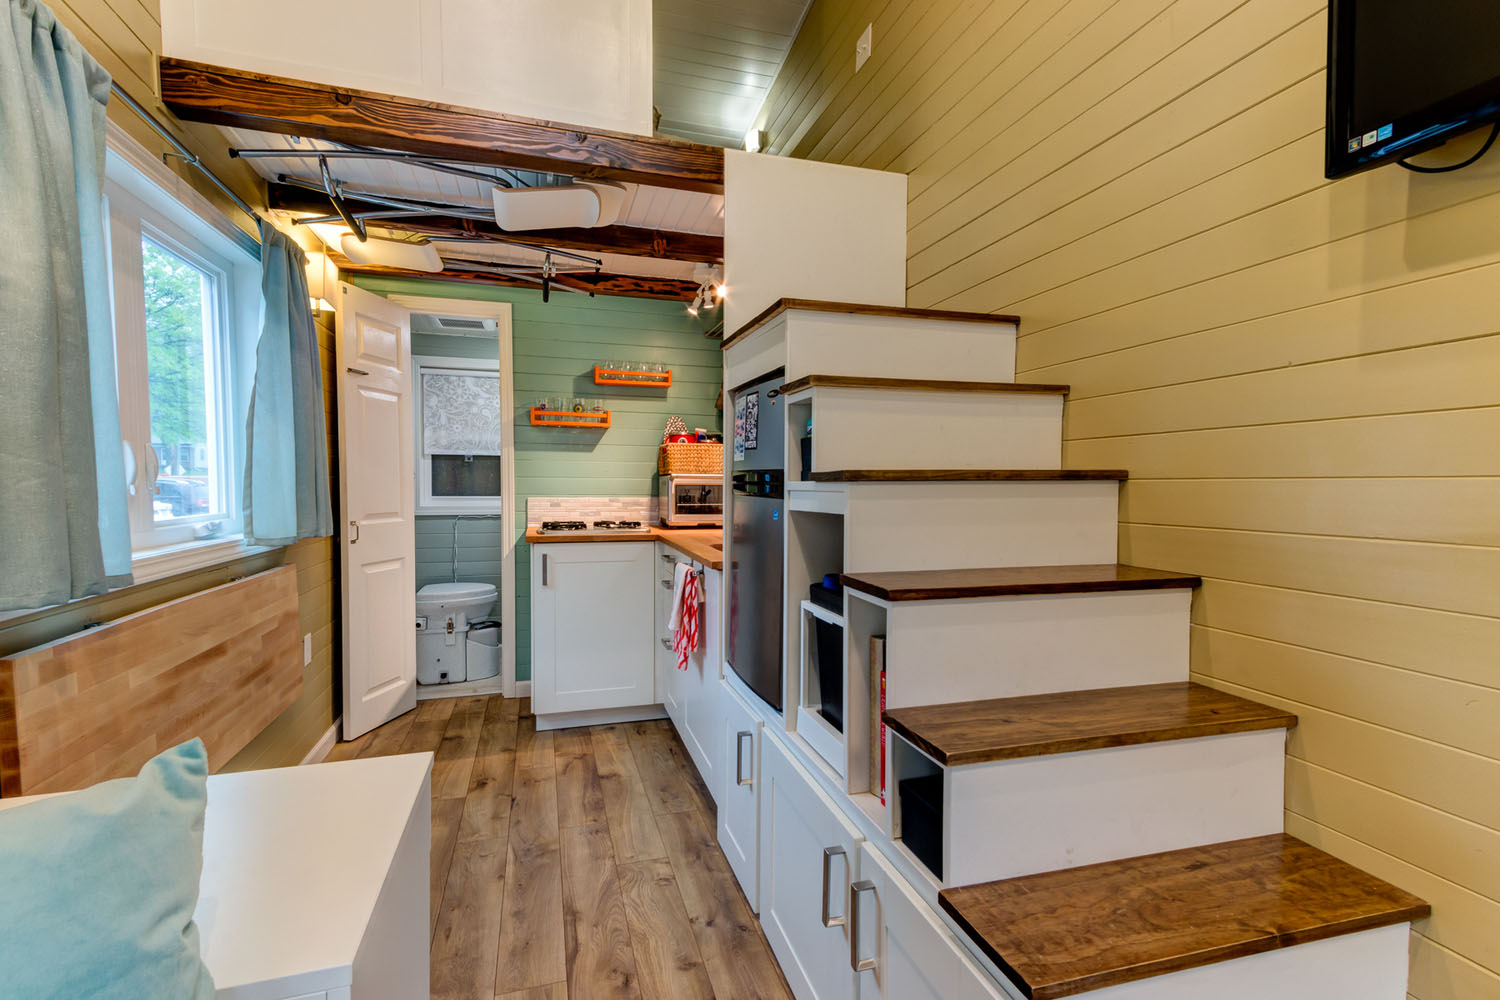 tiny house customs. Tiny House Interior With Staircase Customs P